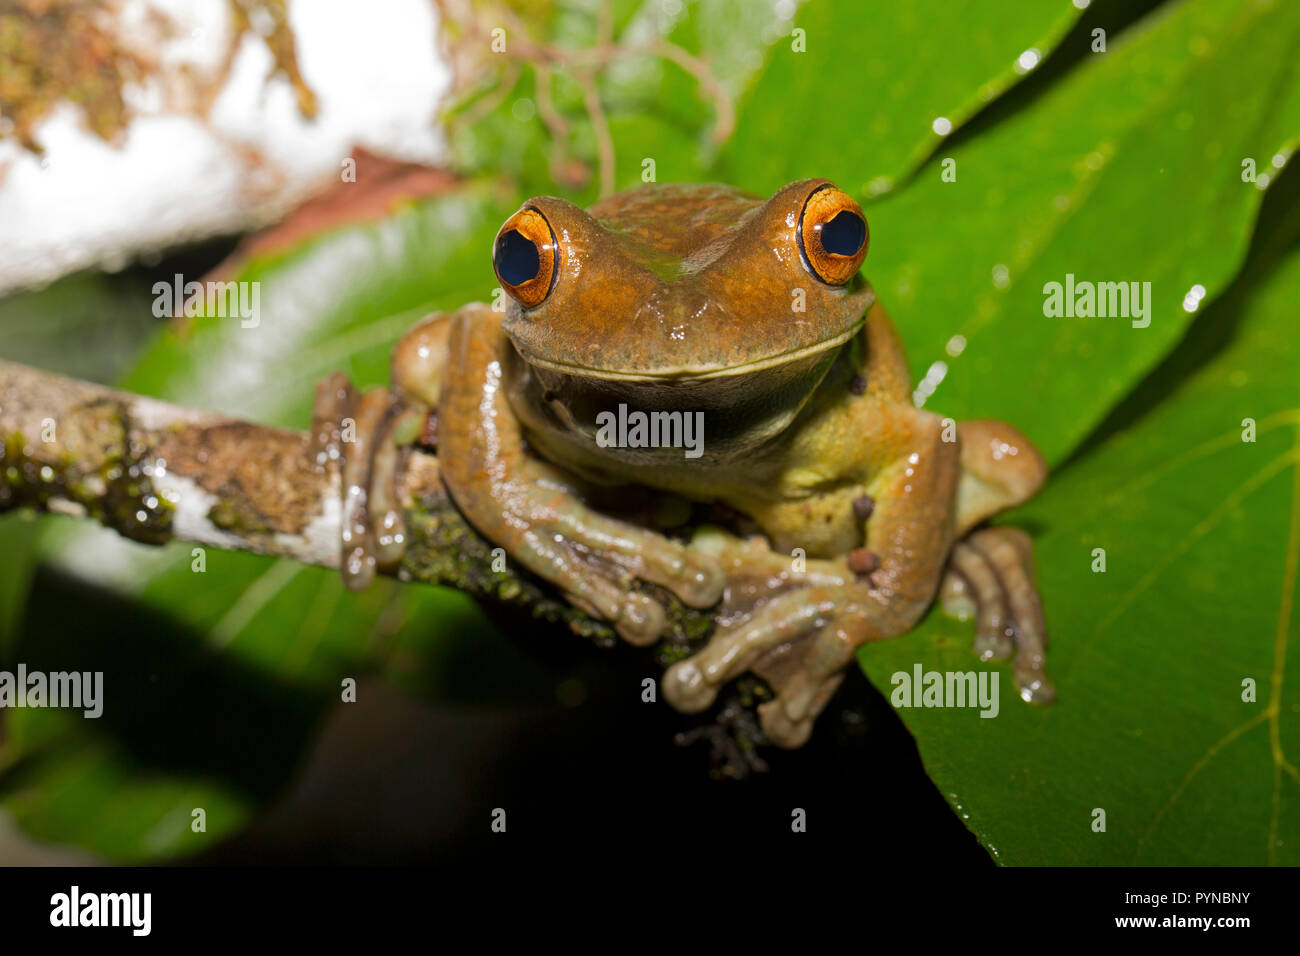 A tree frog photographed in the jungles of Suriname near Botapassie on the Suriname River. Suriname is noted for its unspoiled rainforests and biodive Stock Photo